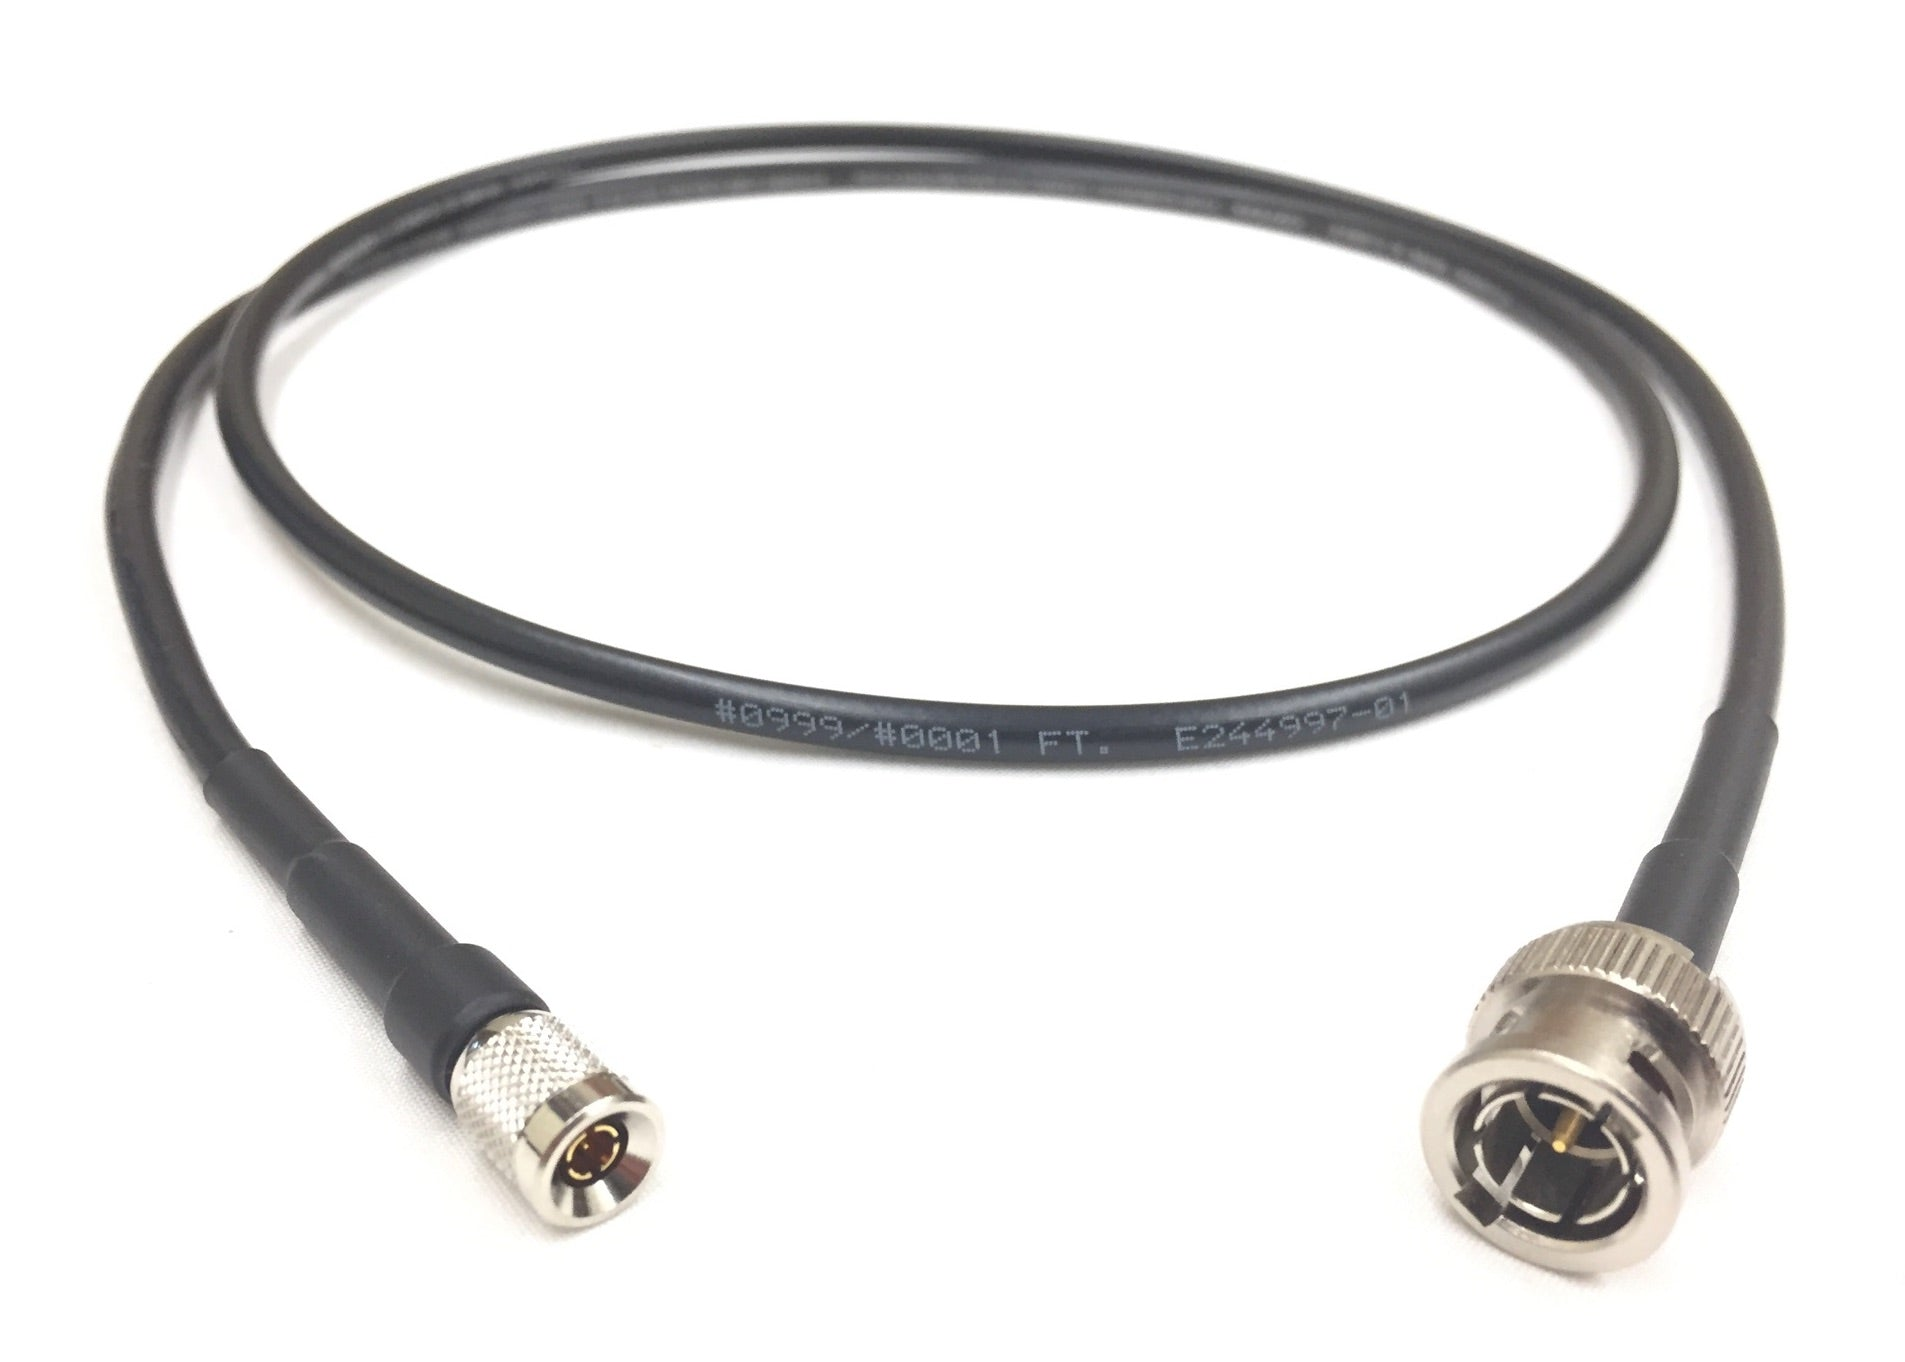 12G Rated BNC to Din 1.0/2.3 HD-SDI 3G/6G/12G Video Coaxial Cable